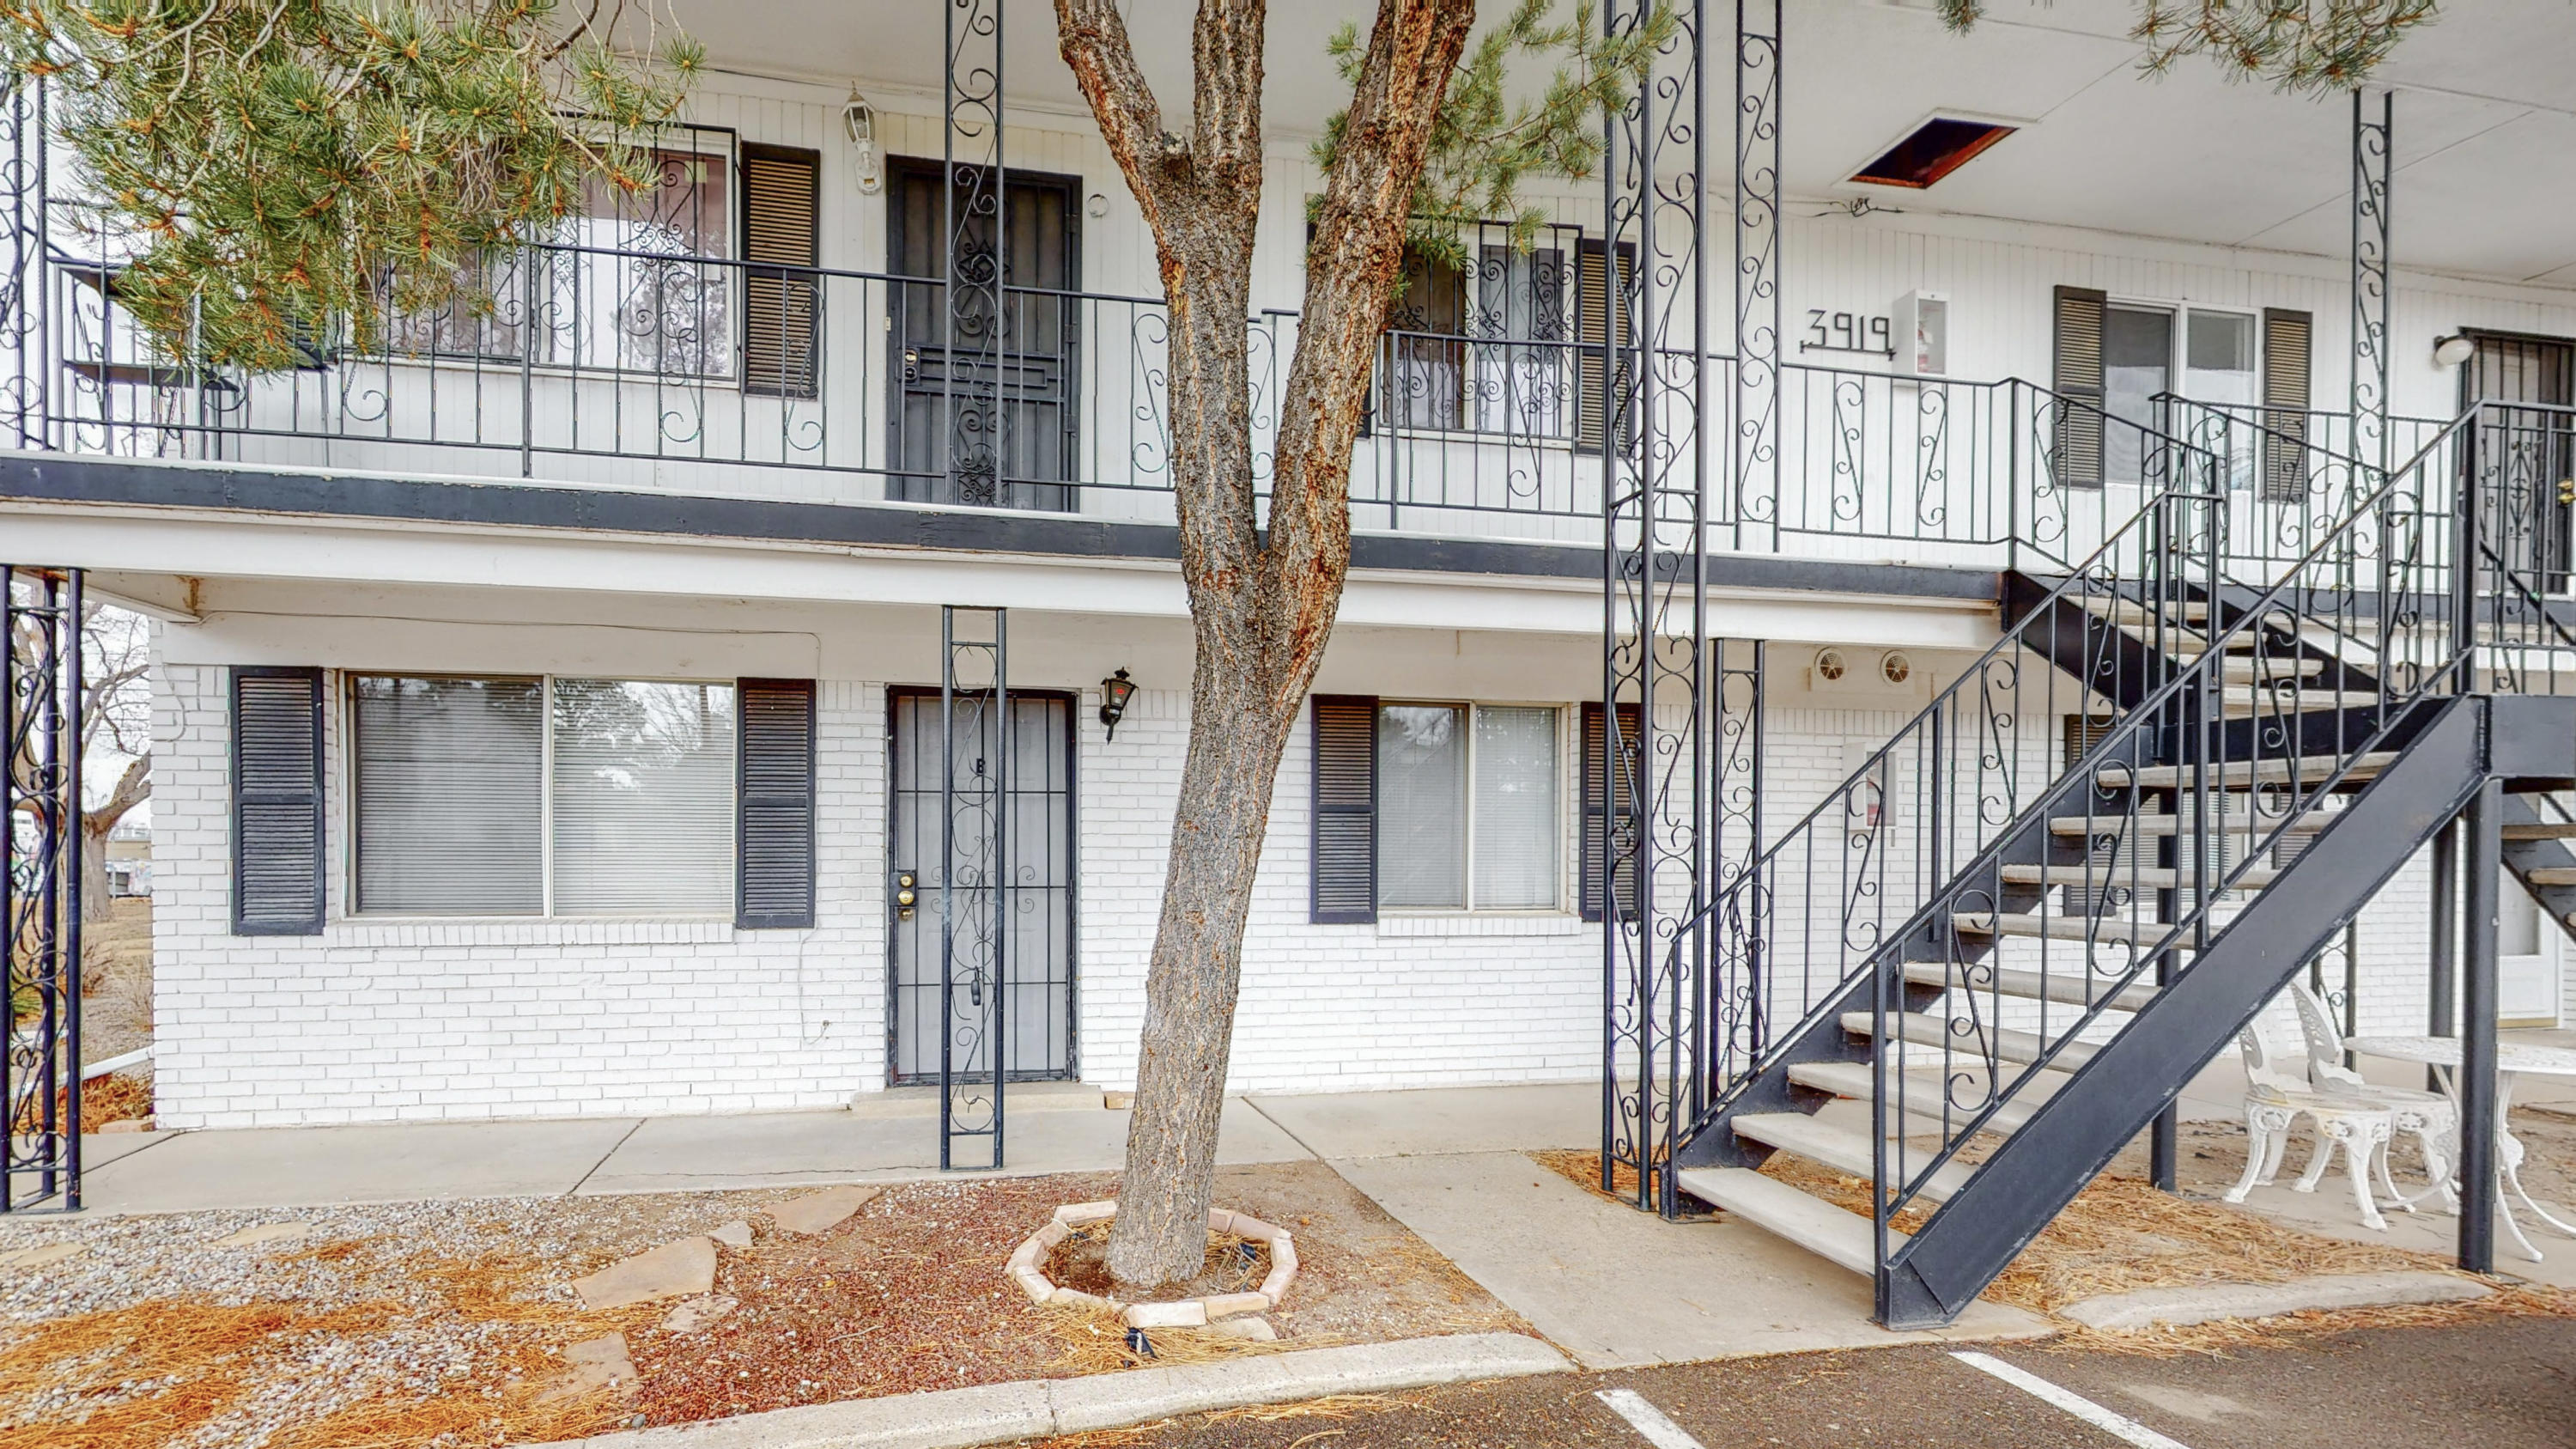 Sweet updated condo in a convenient location.  Fresh paint, all new kitchen cabinets, counters, appliances, faucet and sink!  New flooring in smaller bedroom.  New faucet in bath.  New water heater.  HOA pays water. BROKER:. see LOSO remarks please.